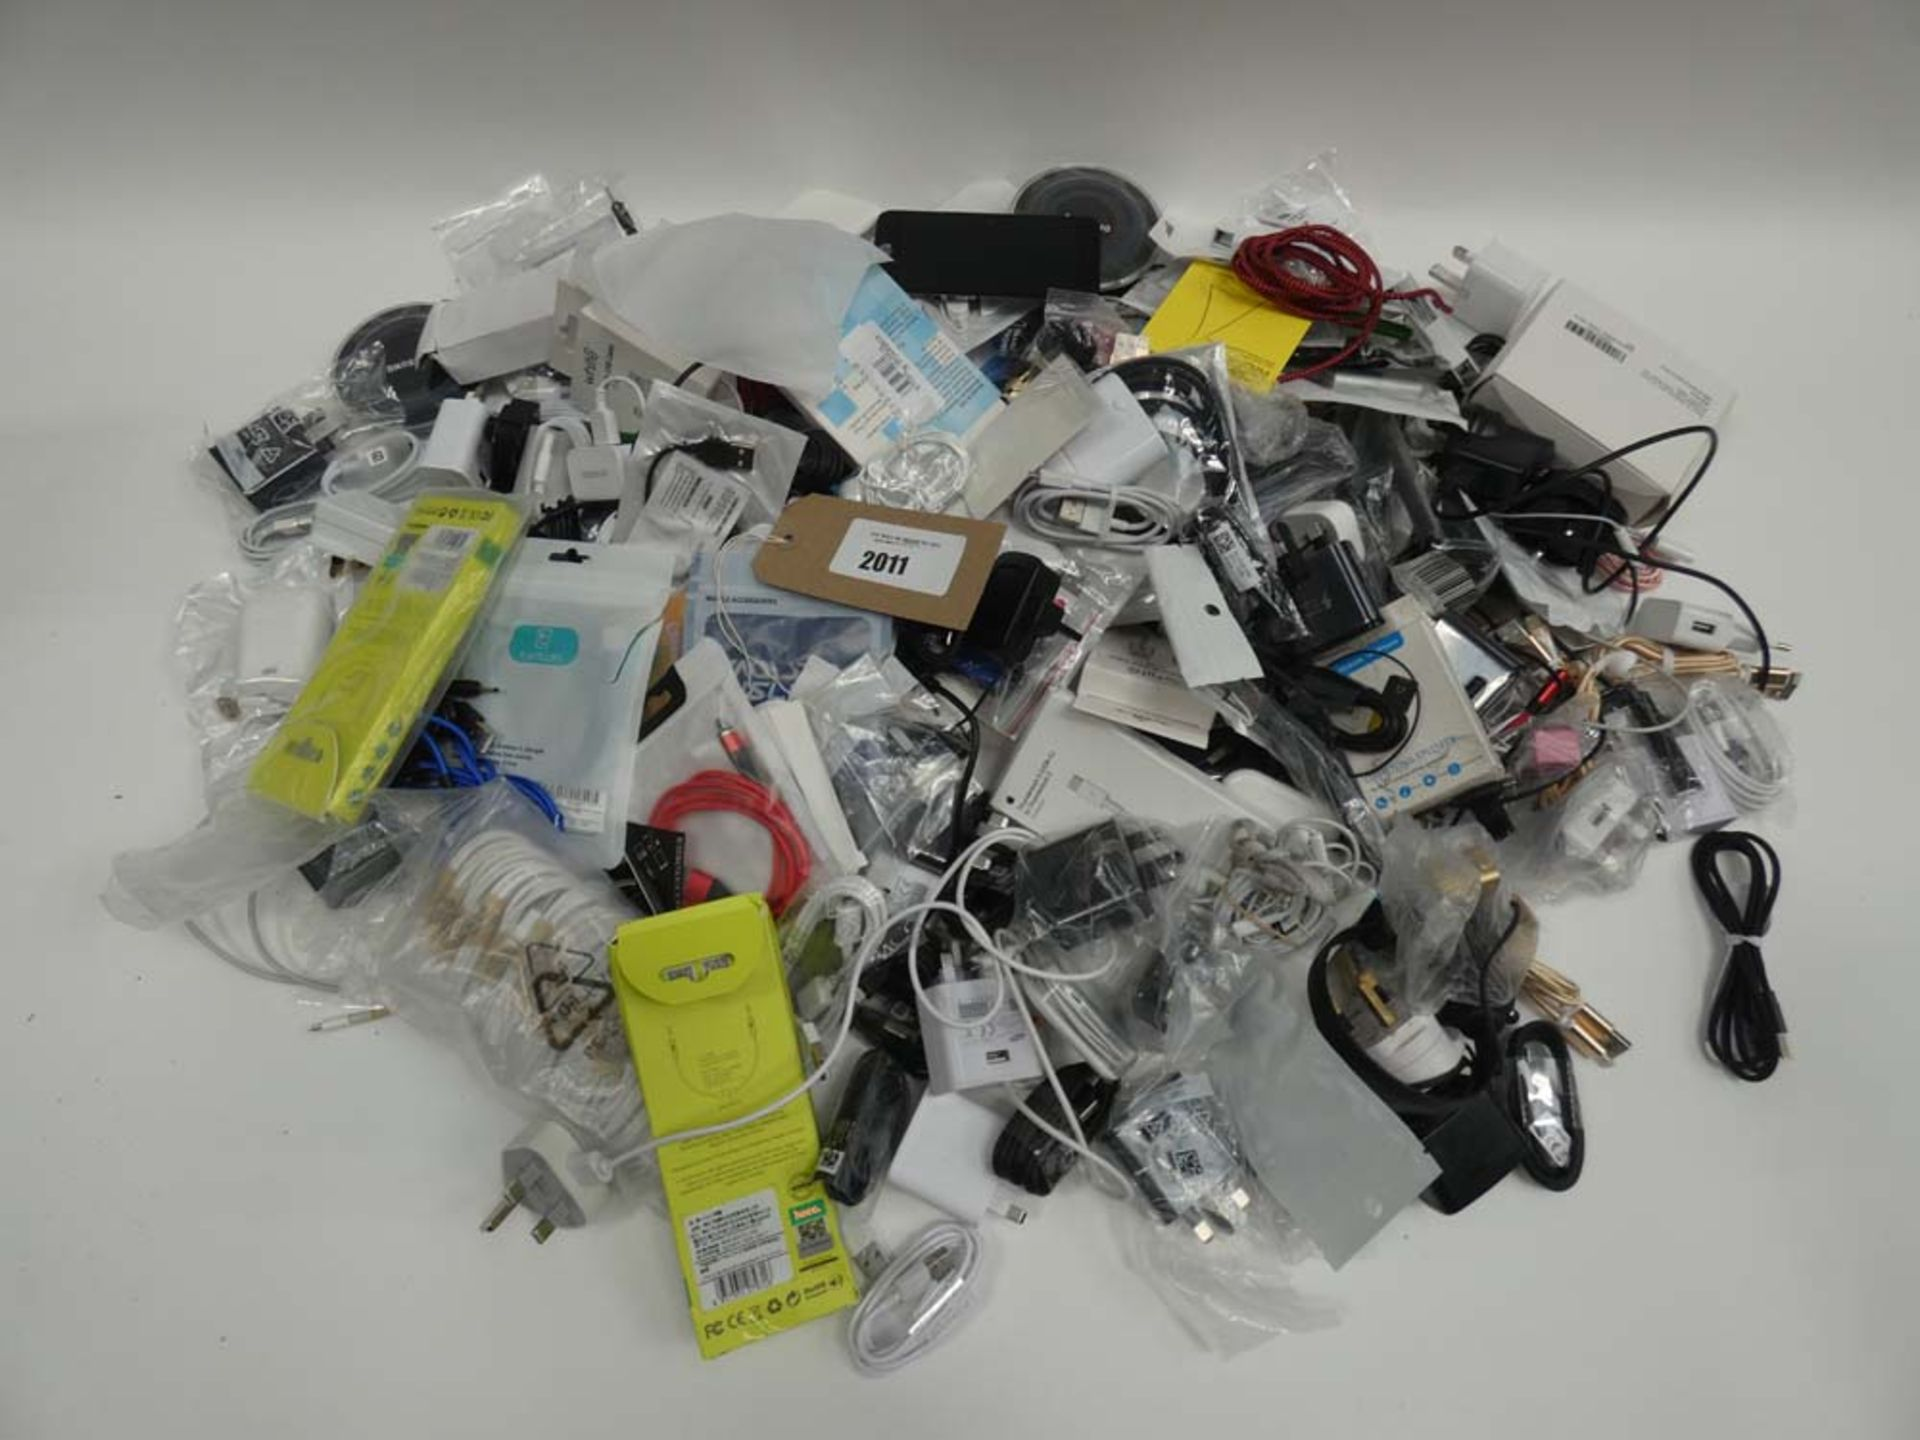 Bag containing various electronic charging cables